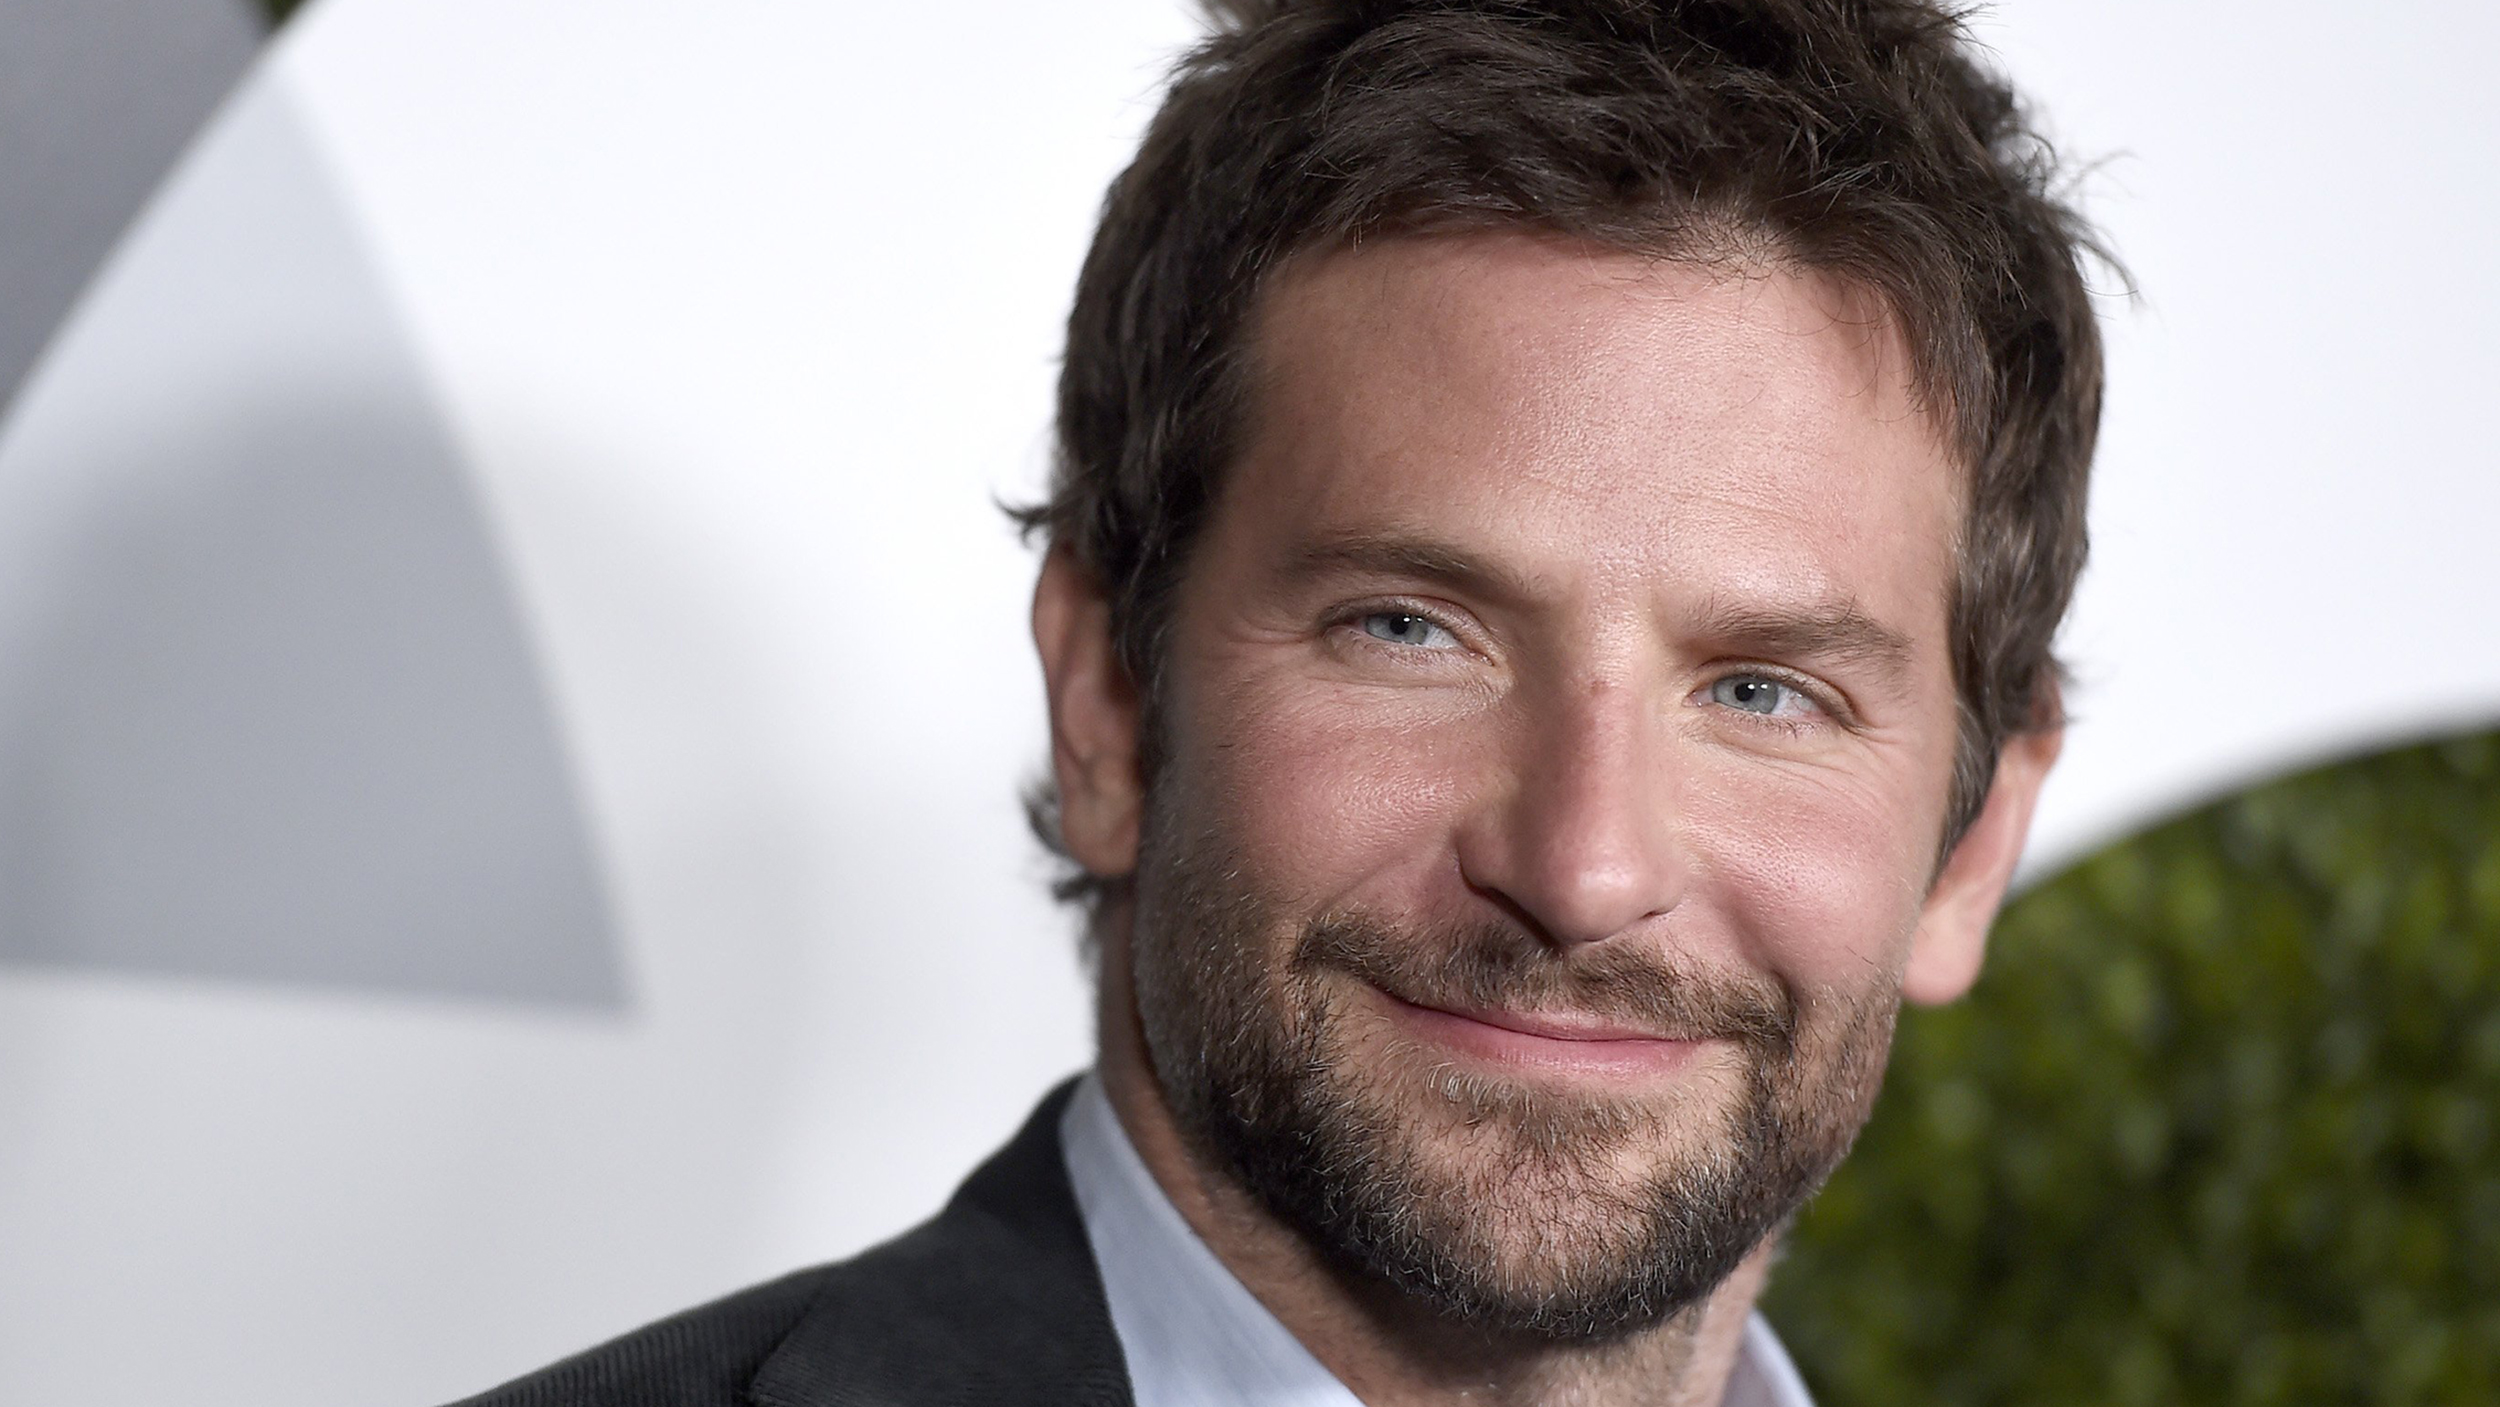 One of the sexiest male celebrities is Bradley Cooper